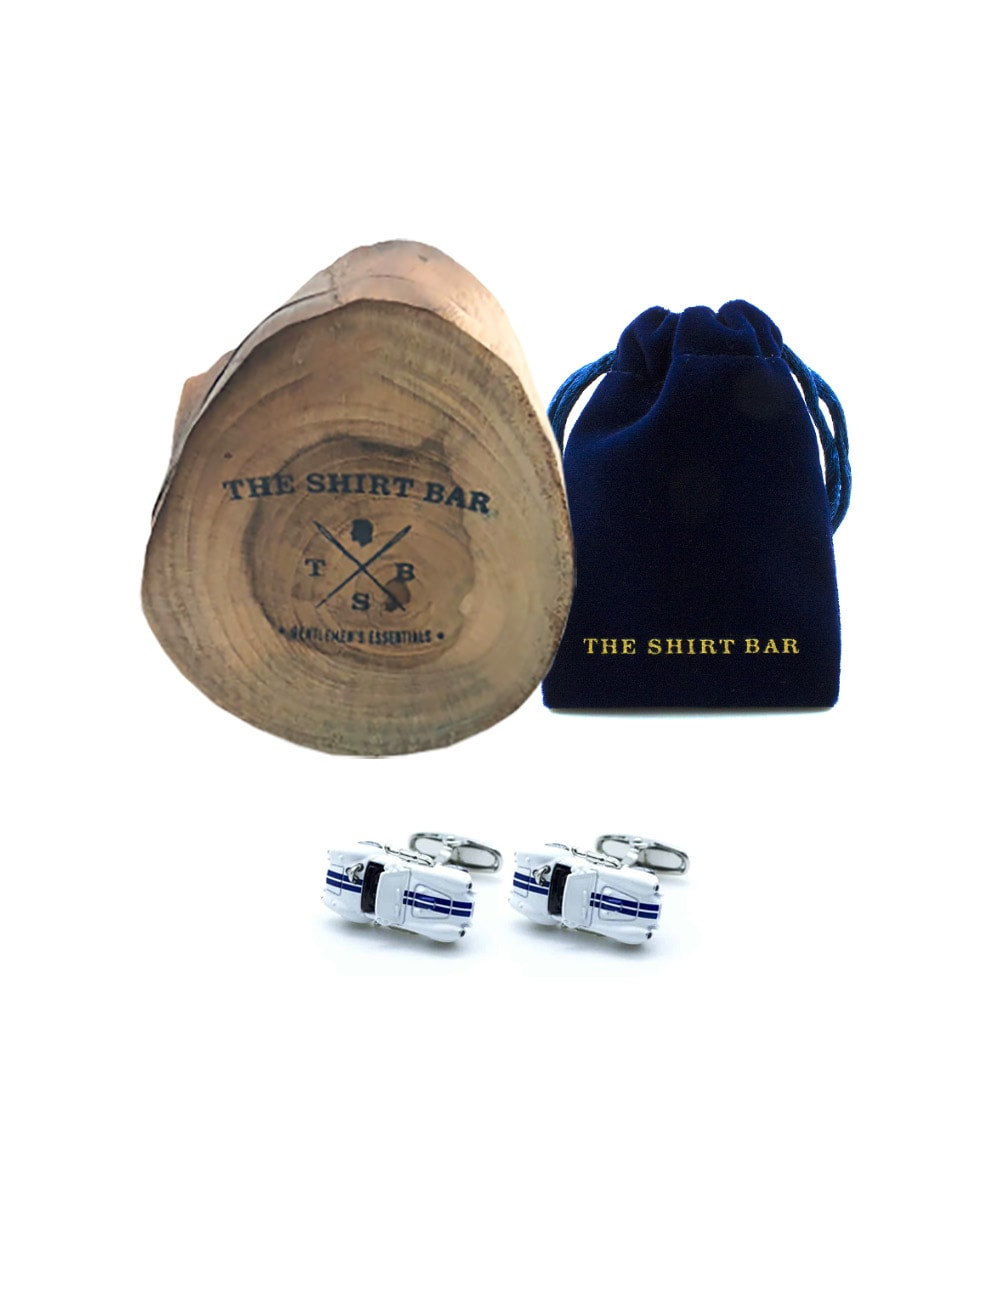 White Vintage Topless Car with Navy Stripes Cufflink